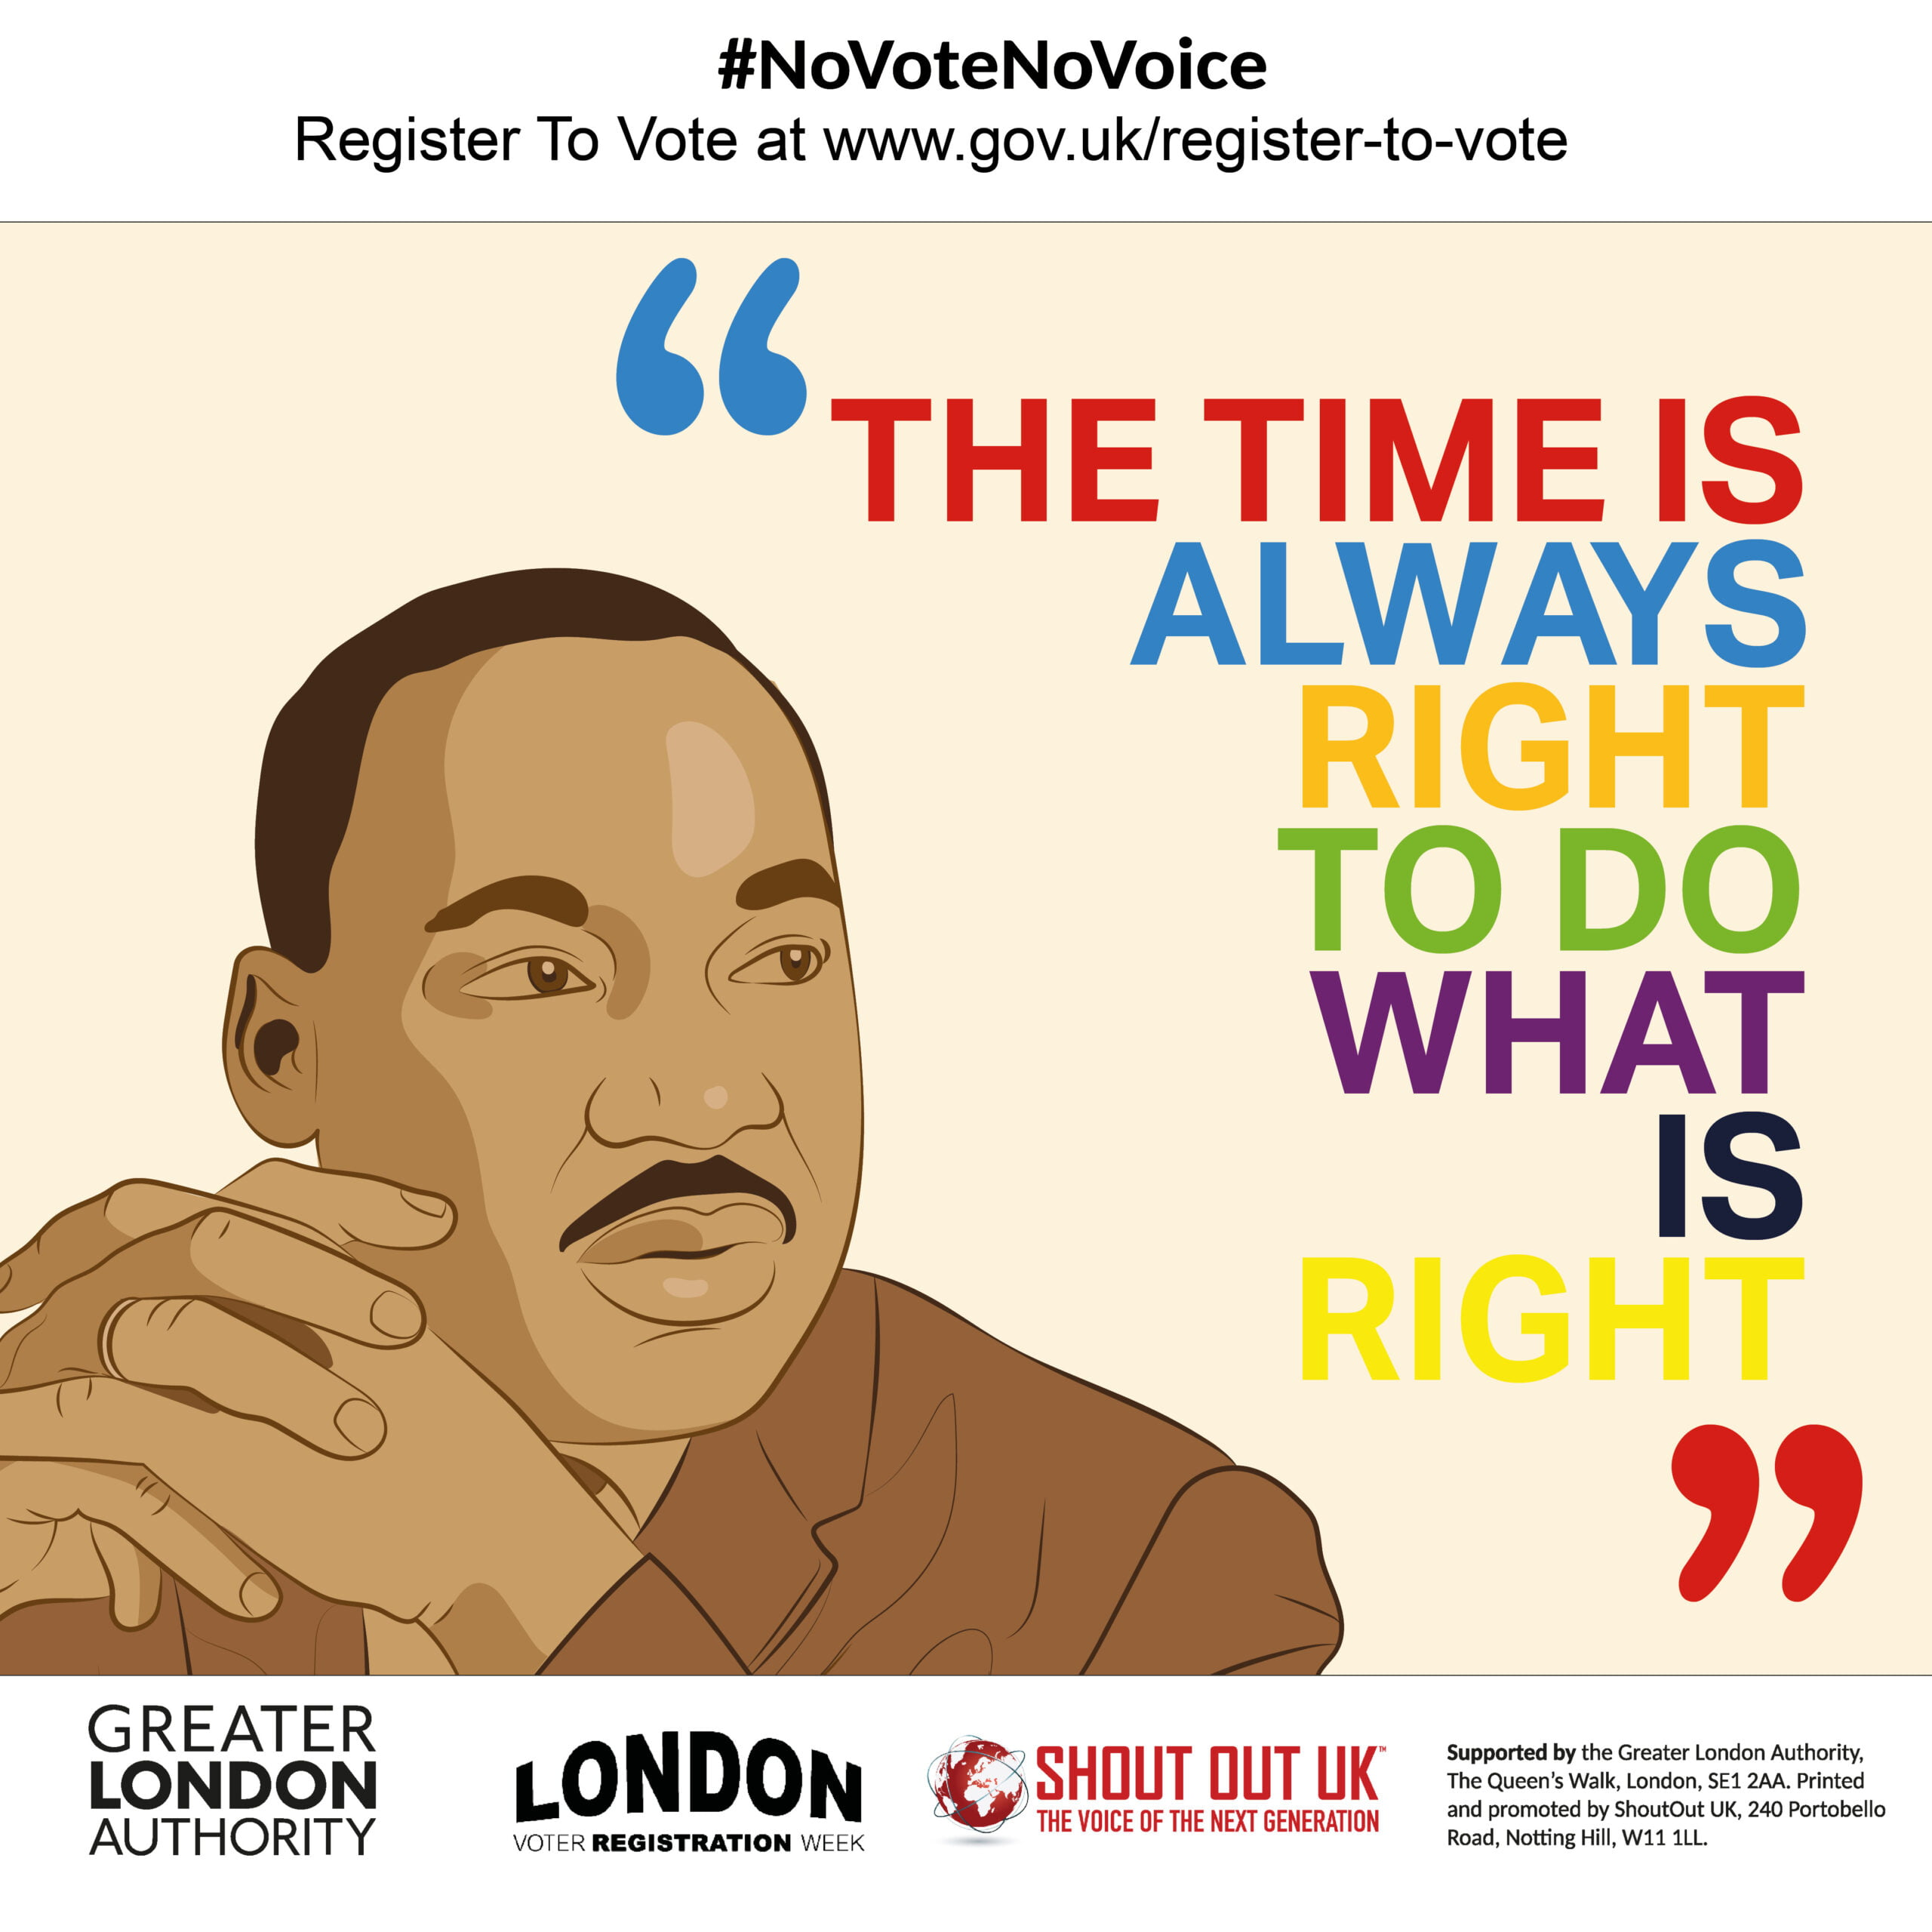 We boosted youth voter registration by 23% during London Voter Registration Week 2020!